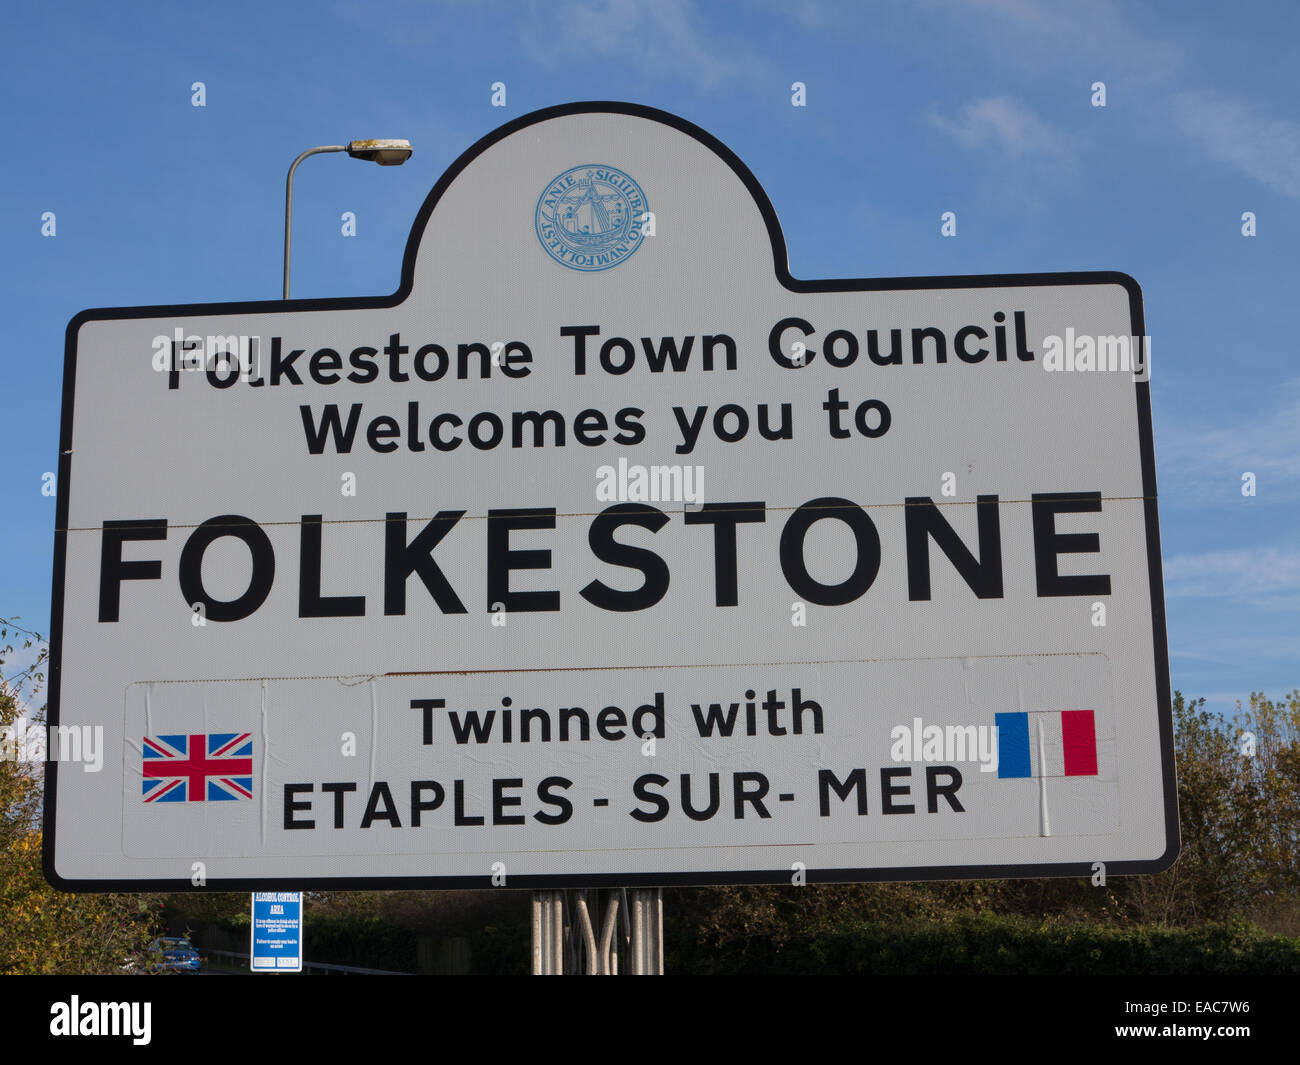 Welcome to Folkestone sign - Stock Image